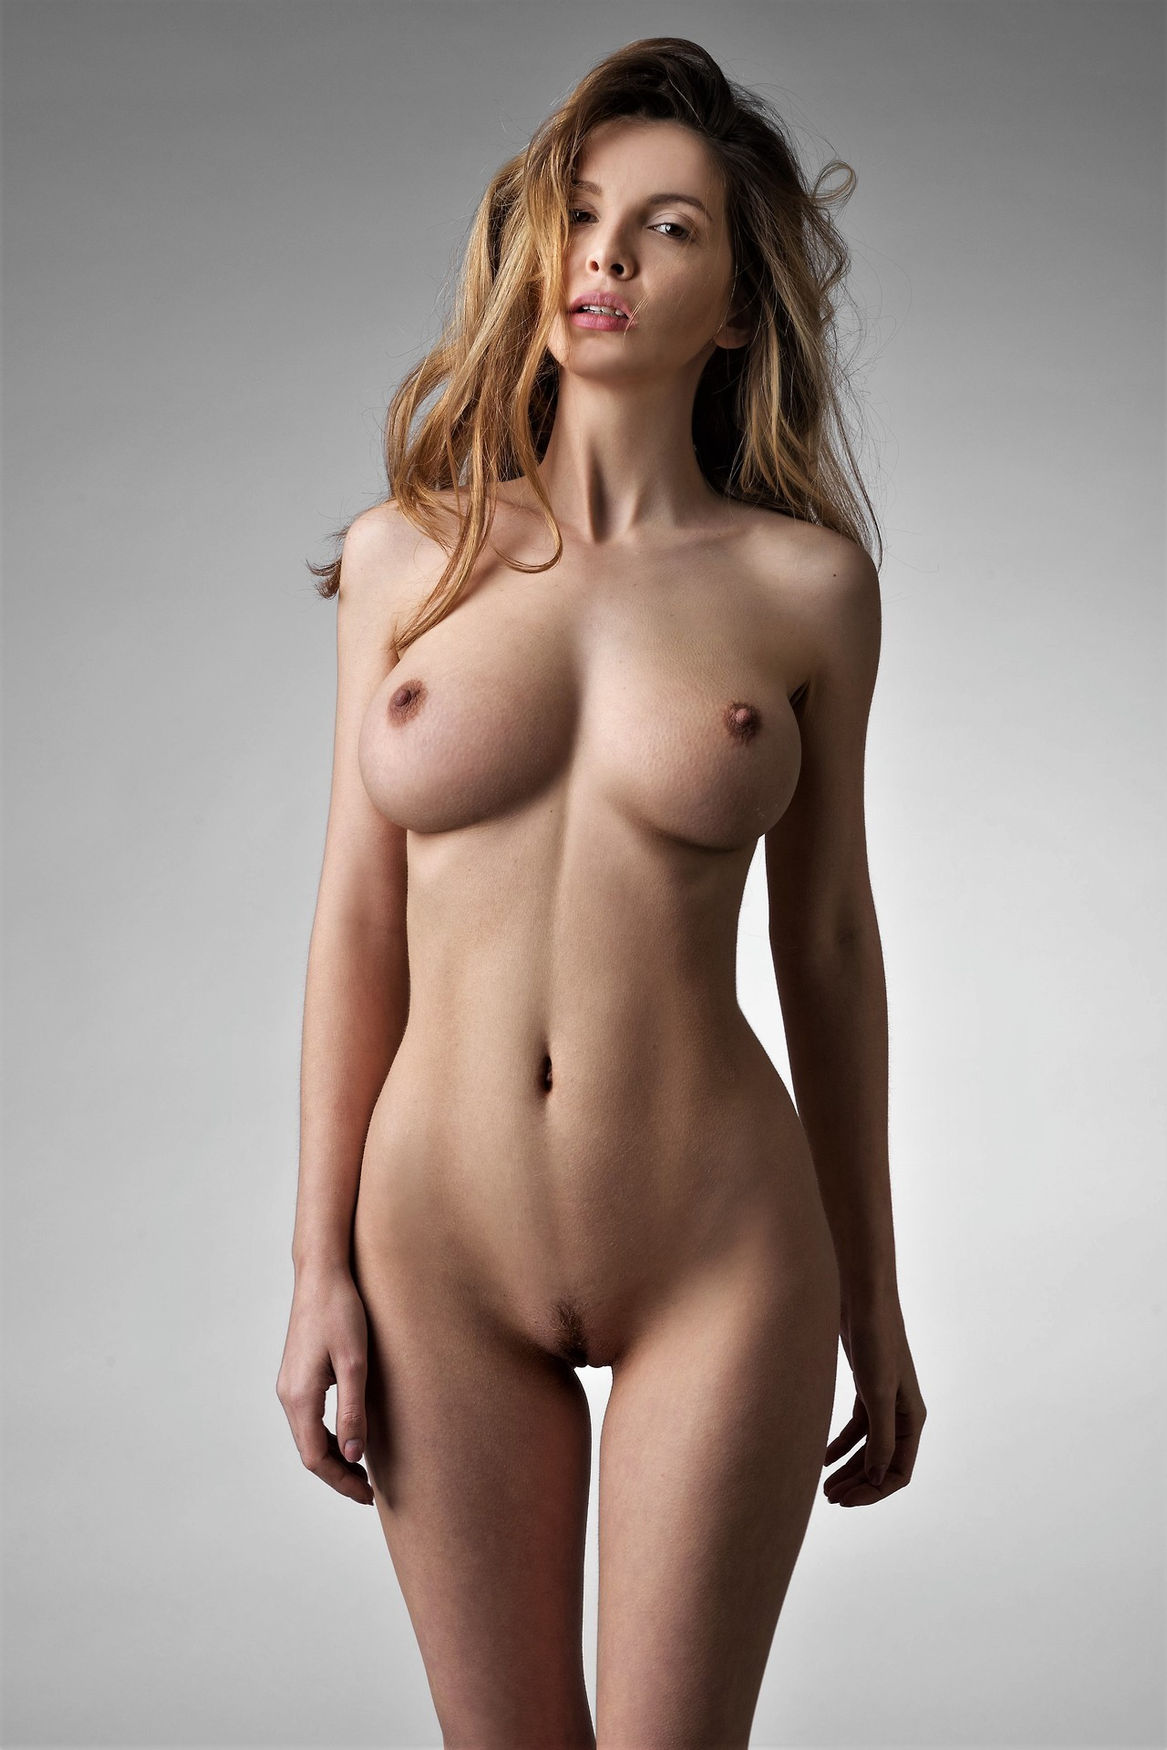 atkins-chapter-body-nude-people